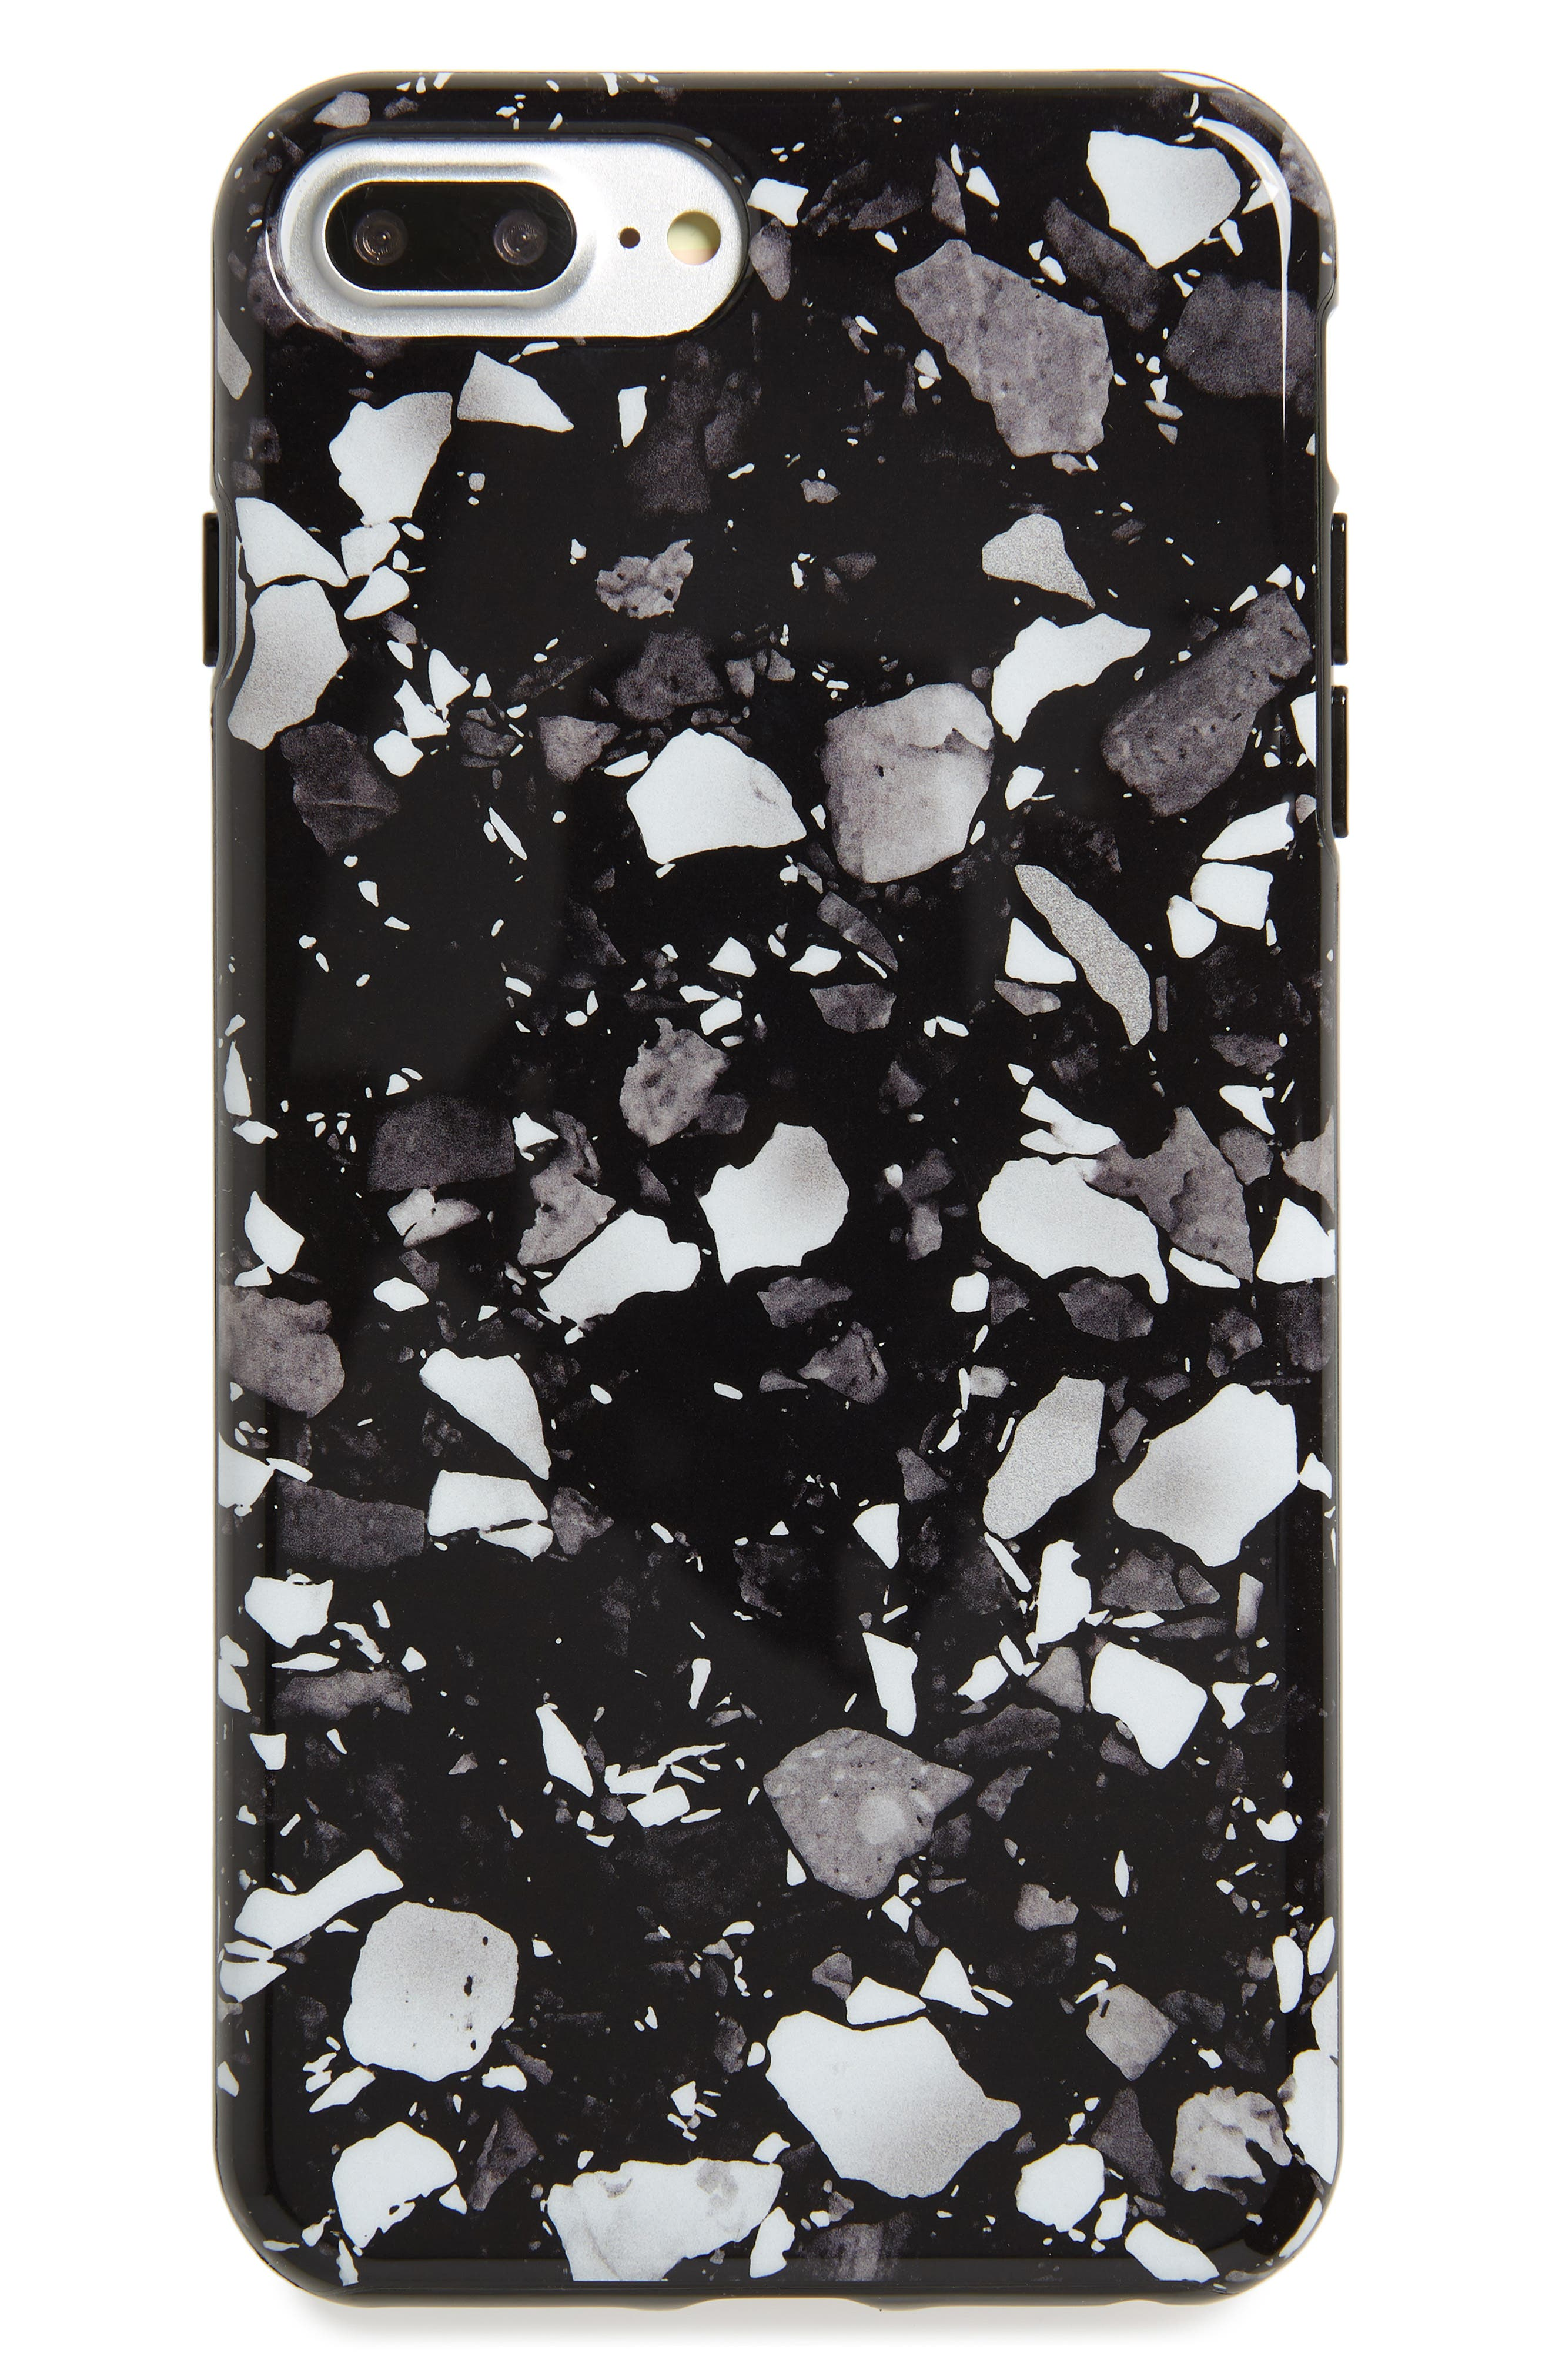 Genuine Marble iPhone 6/6s/7/8 & 6/6s/7/8 Plus Case,                             Main thumbnail 1, color,                             BLACK